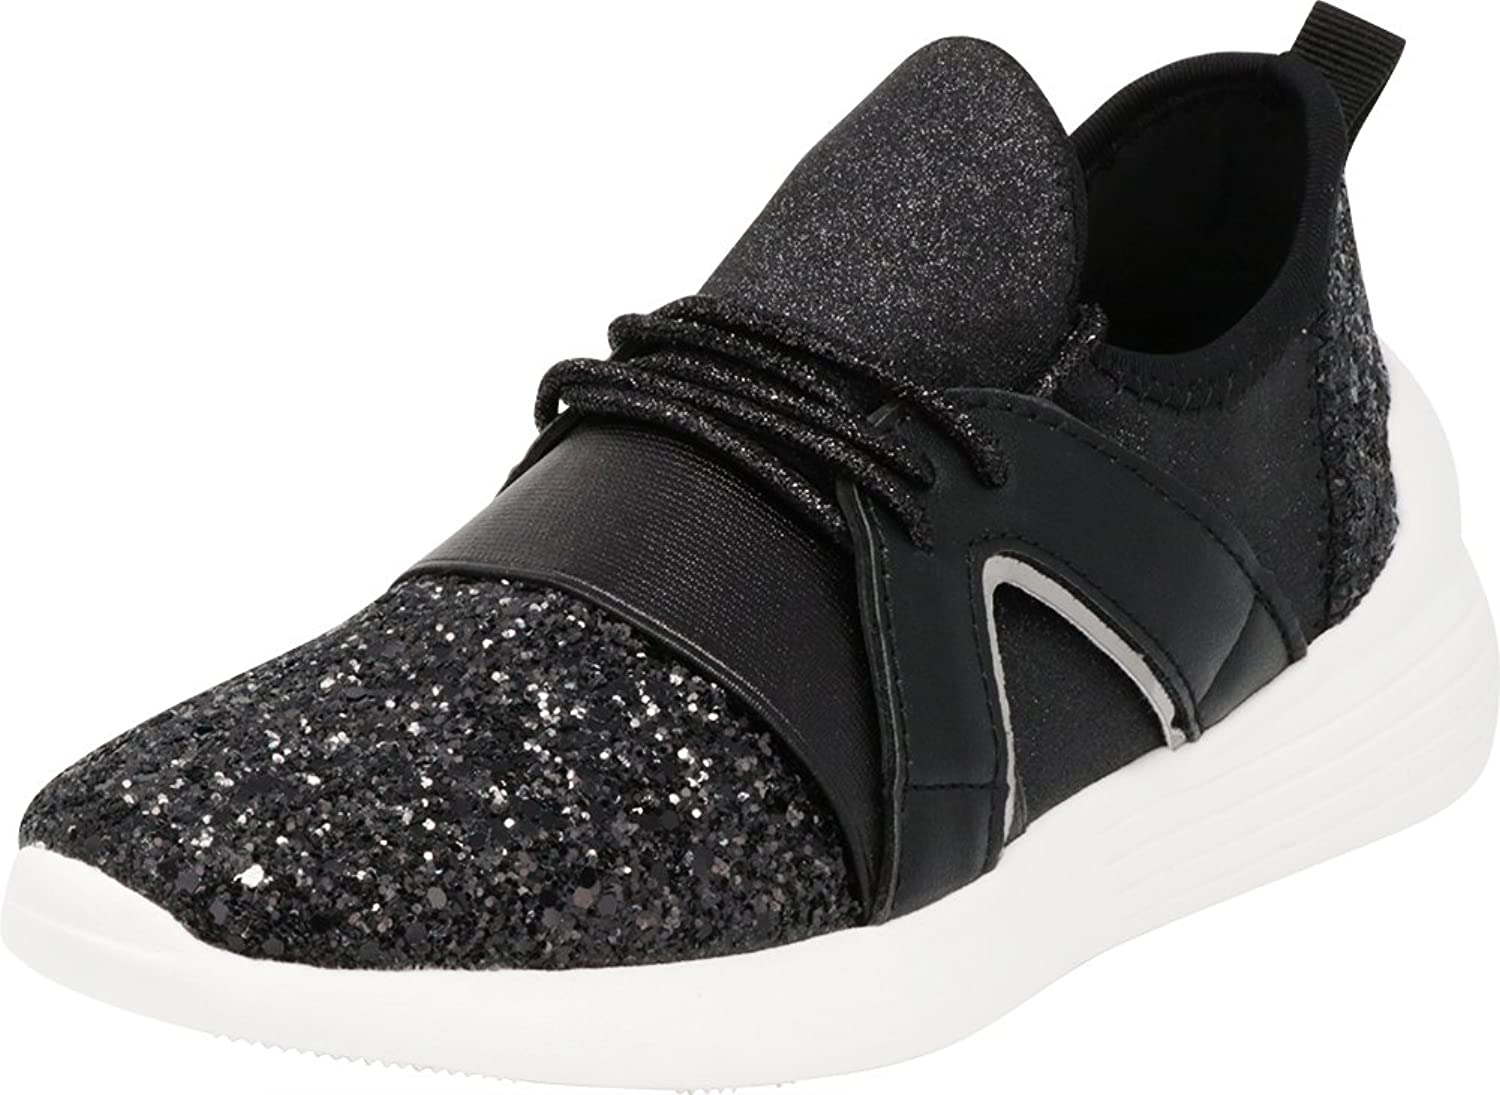 Cambridge Select Women's Low Top Closed Toe Lightweight Soft Stretch Glitter Lace-up Casual Sport Fashion Sneaker